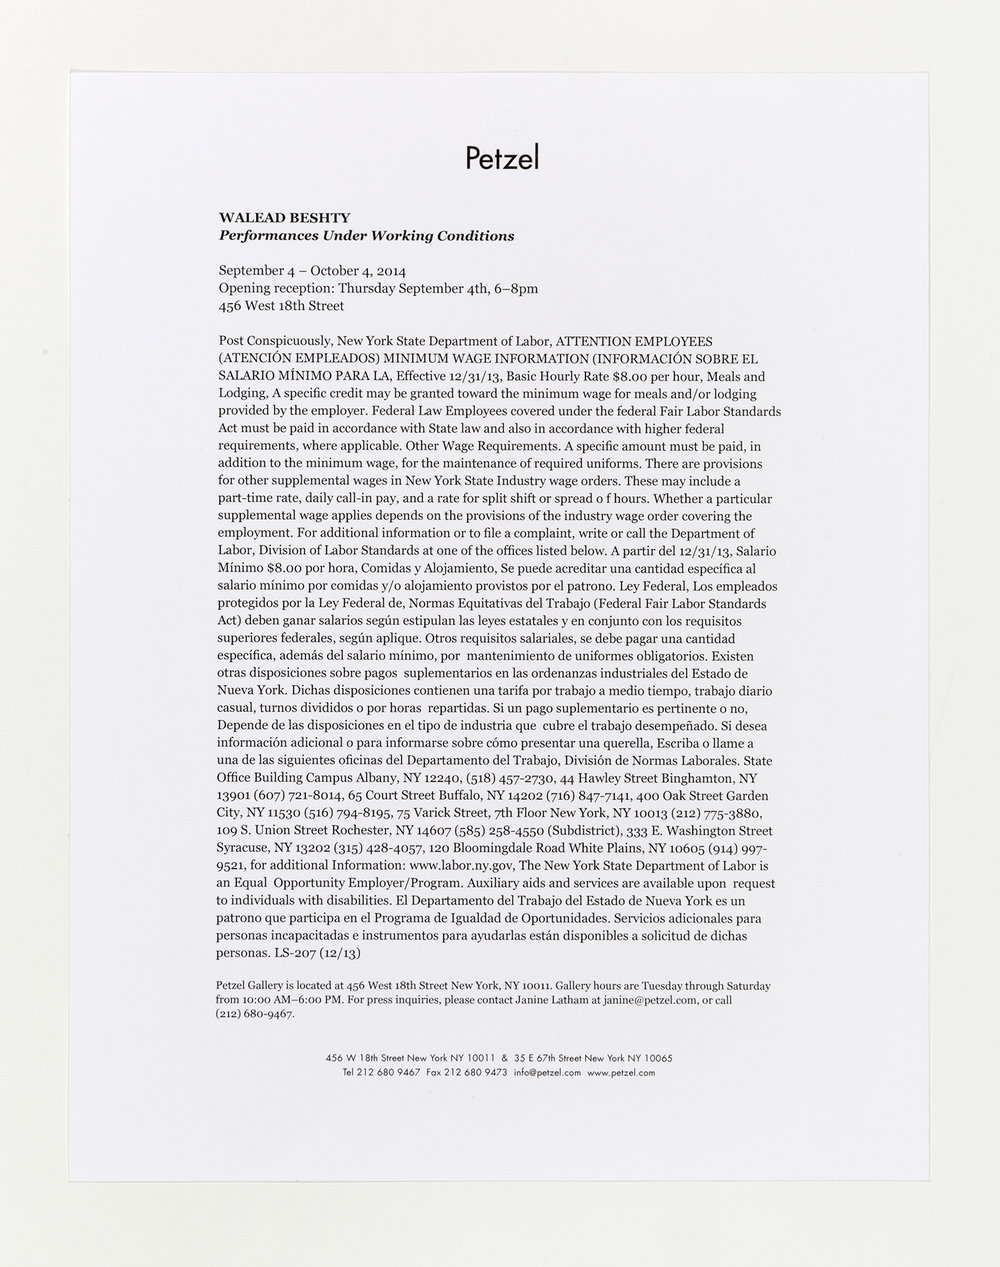 Performances Under Working Conditions press release   Petzel  New York  New York  2014